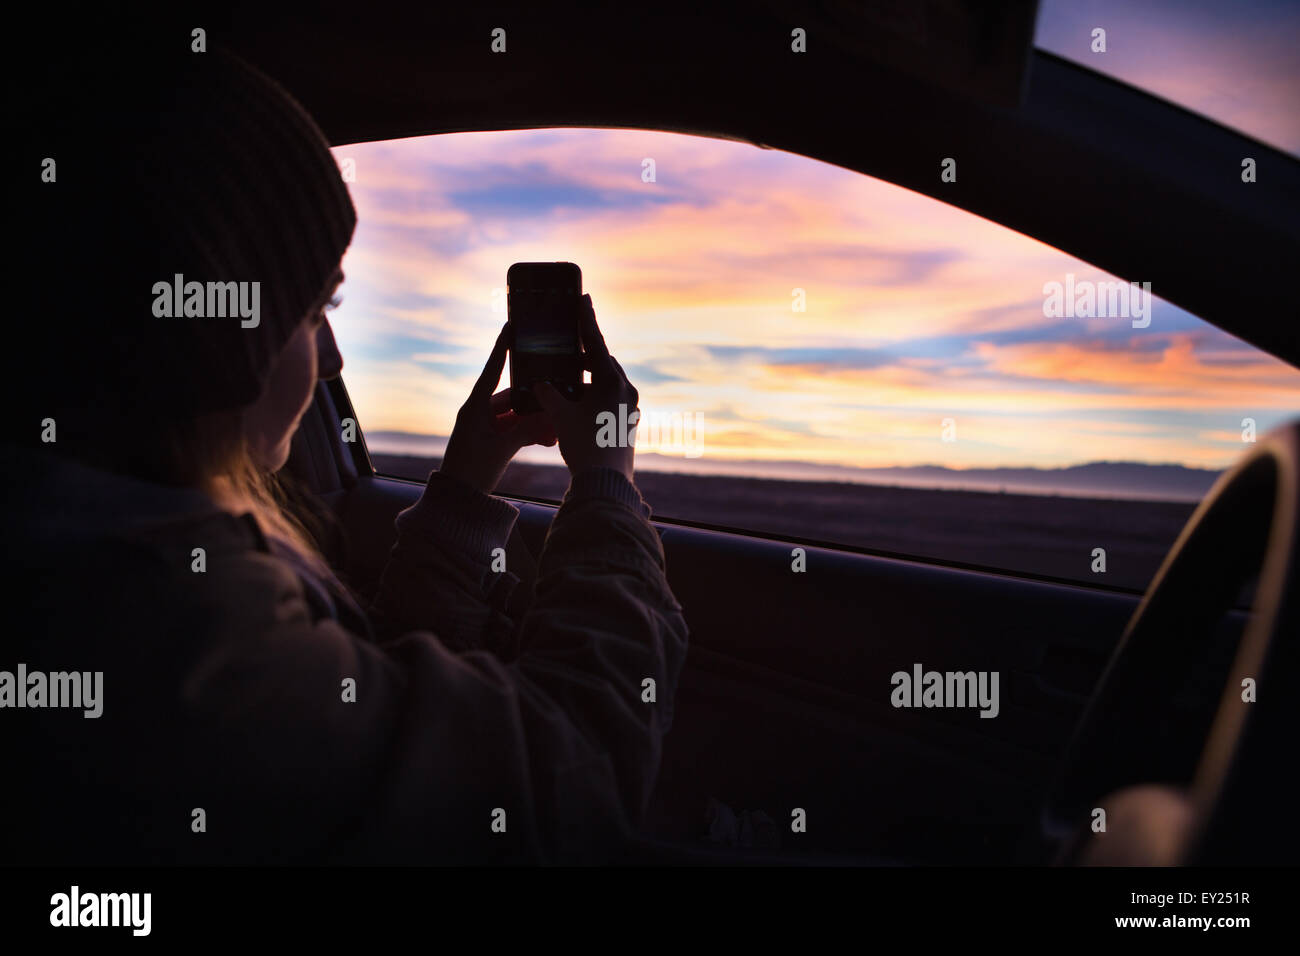 Young woman taking photograph of sunset with smartphone from inside car - Stock Image